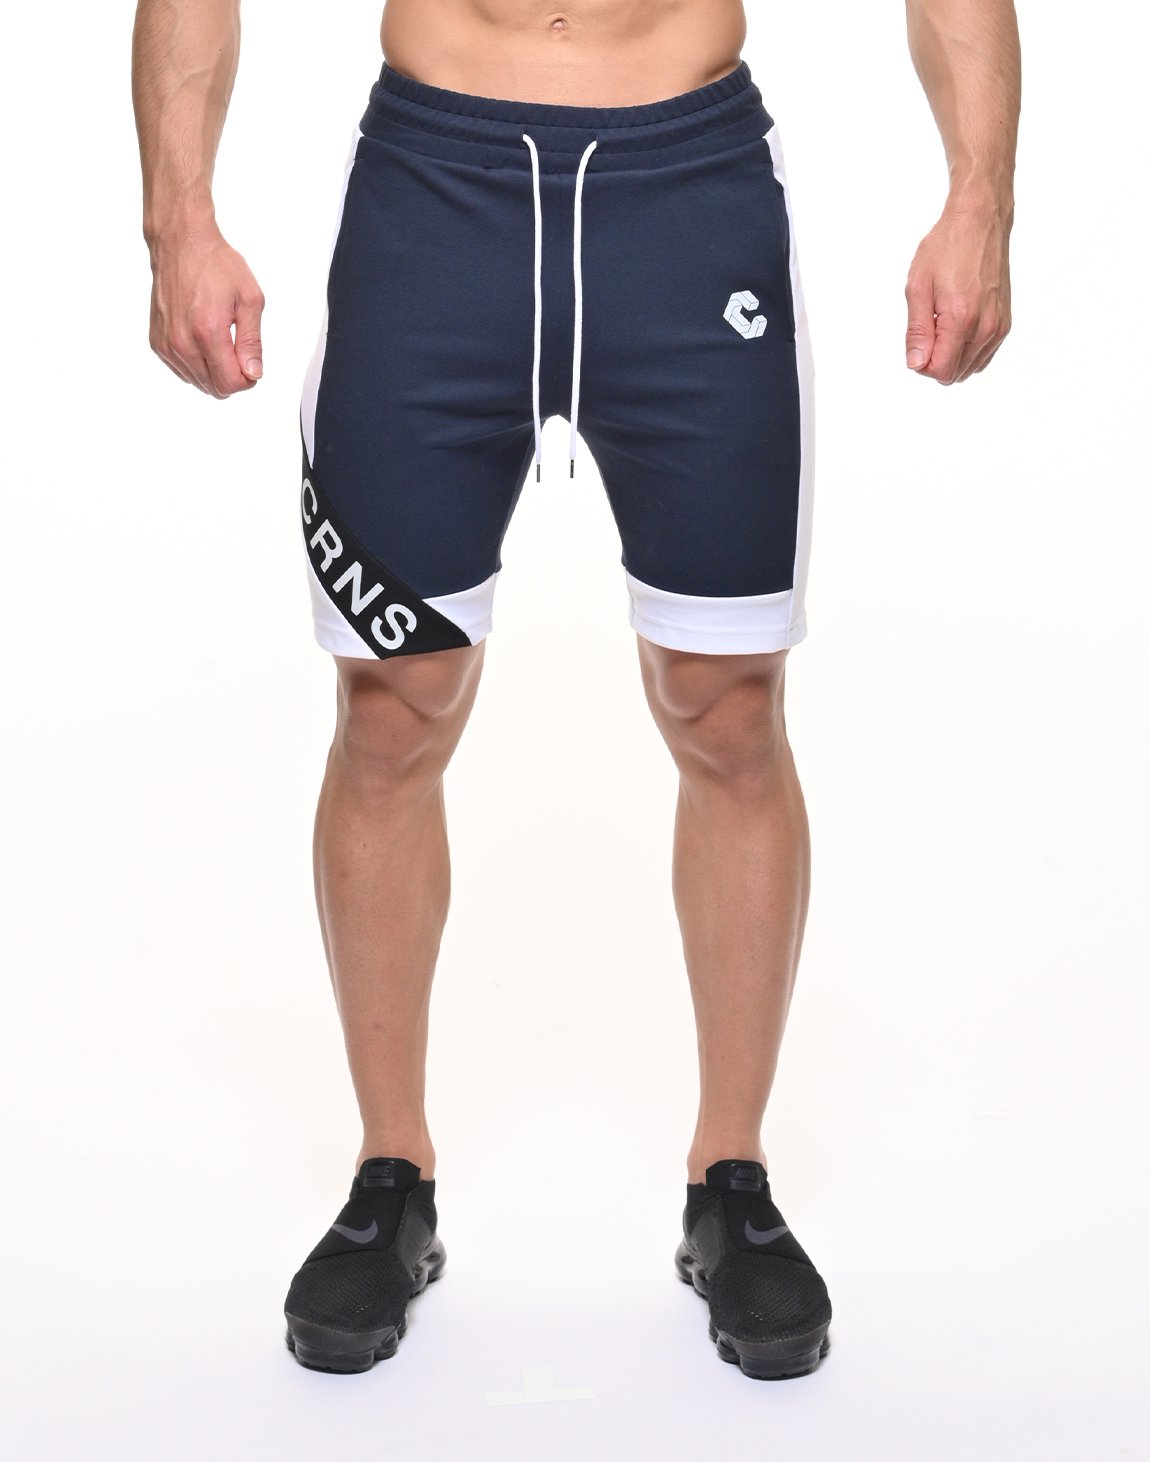 <img class='new_mark_img1' src='https://img.shop-pro.jp/img/new/icons1.gif' style='border:none;display:inline;margin:0px;padding:0px;width:auto;' />CRNS DIAGONAL LINE SHORTS【NAVY】